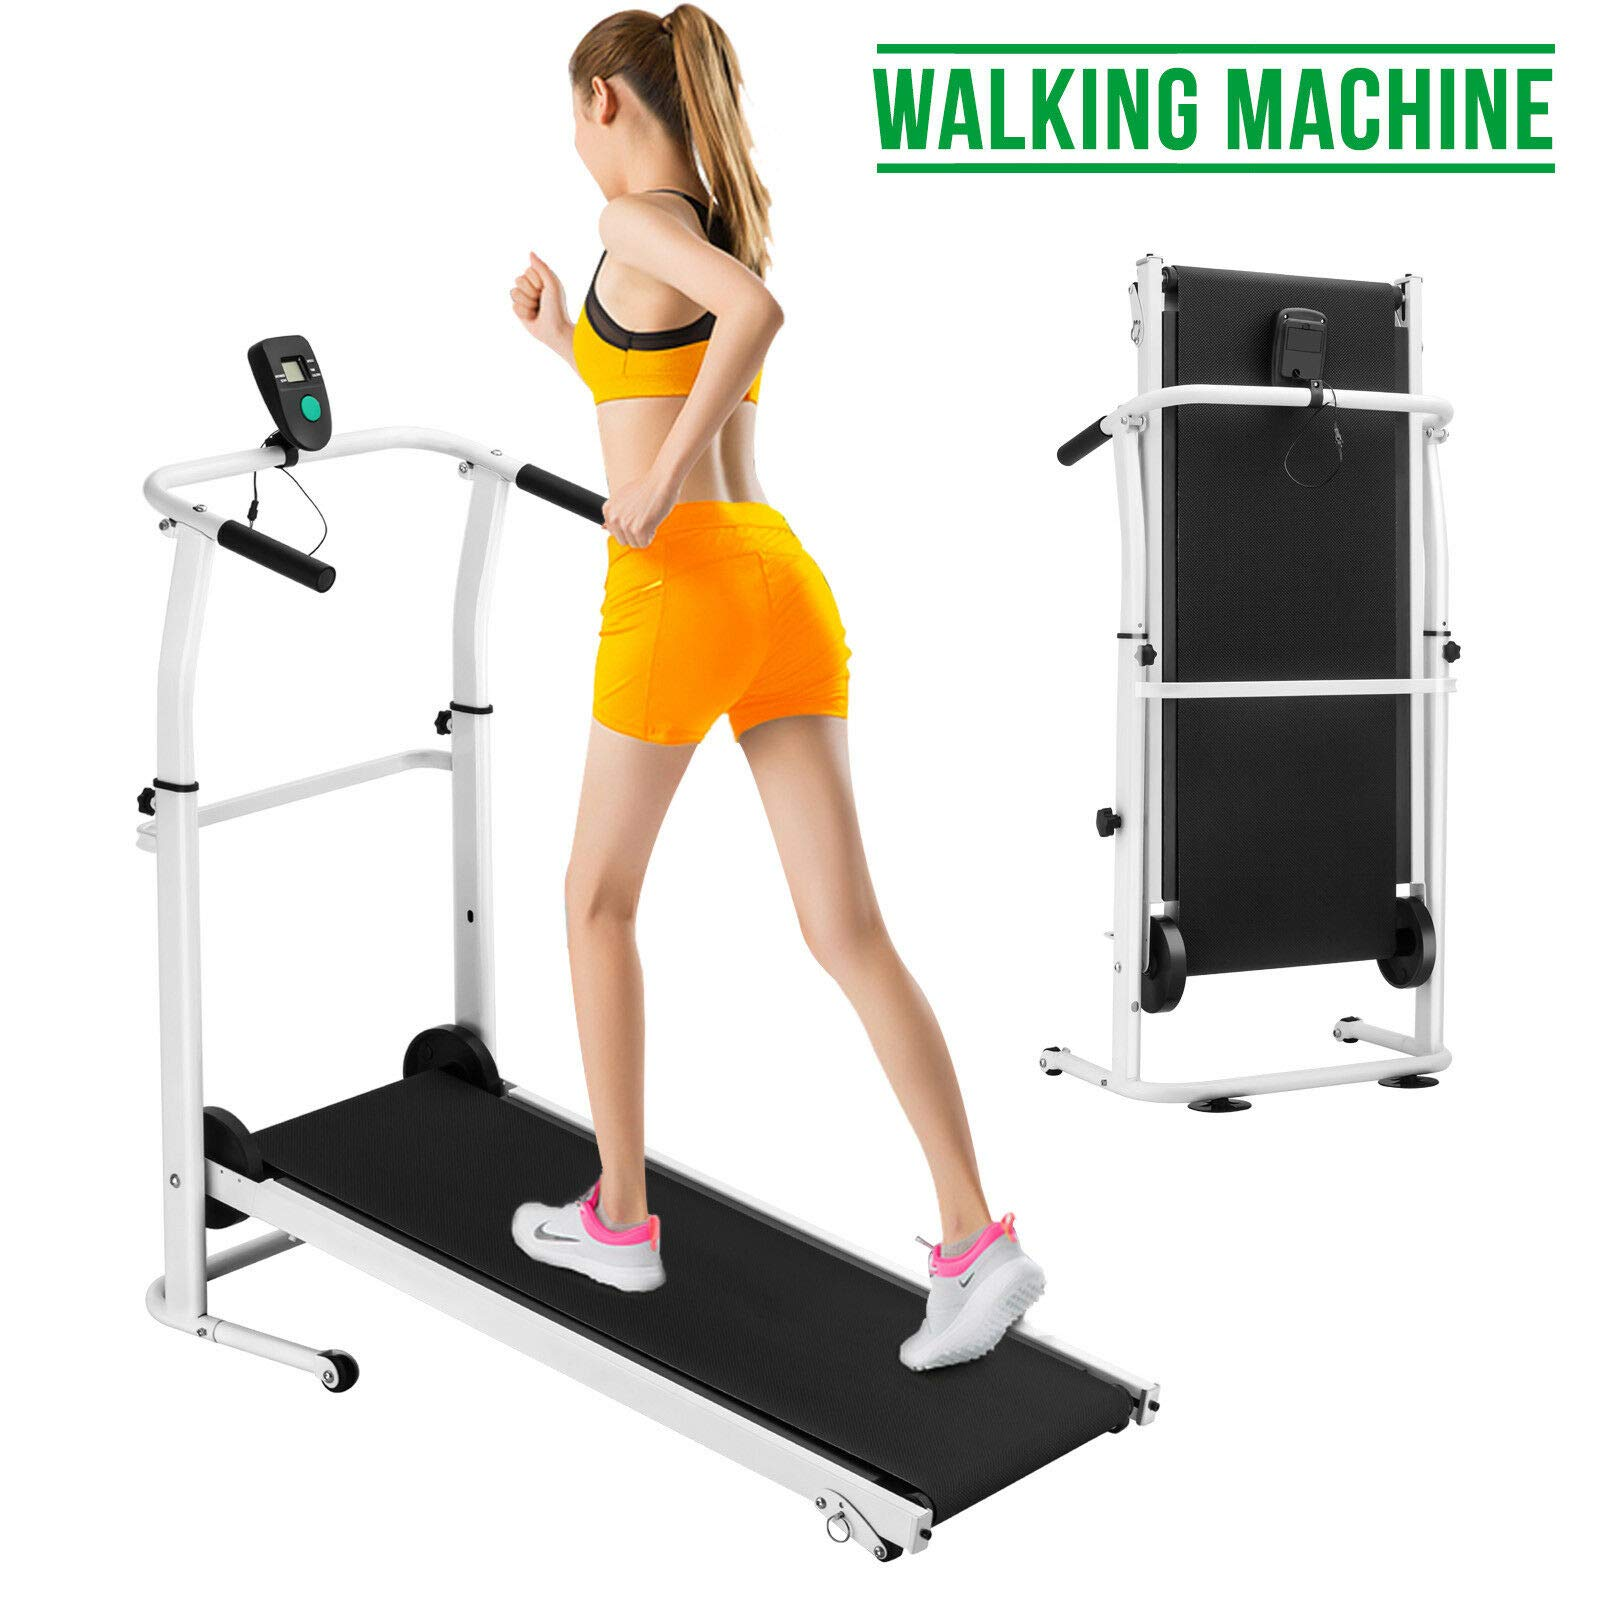 MB-Sportstar Manual Treadmill Working Machine Cardio Fitness Exercise Folding Incline Home